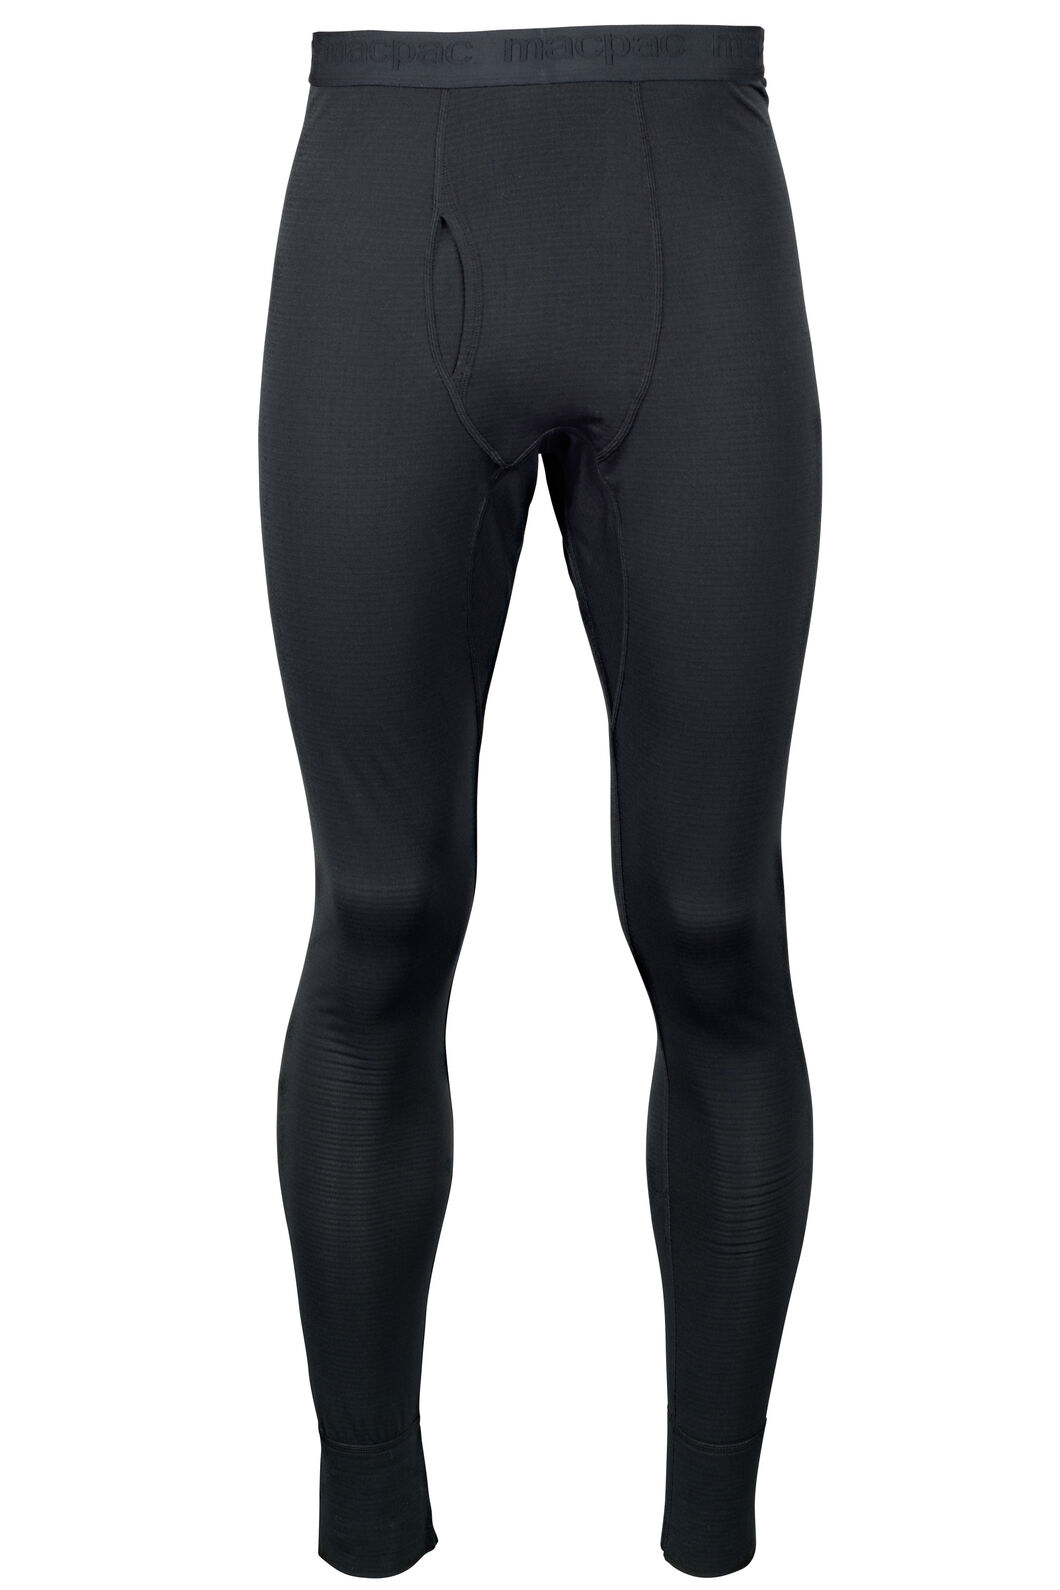 ProThermal Long Johns - Men's, Black, hi-res